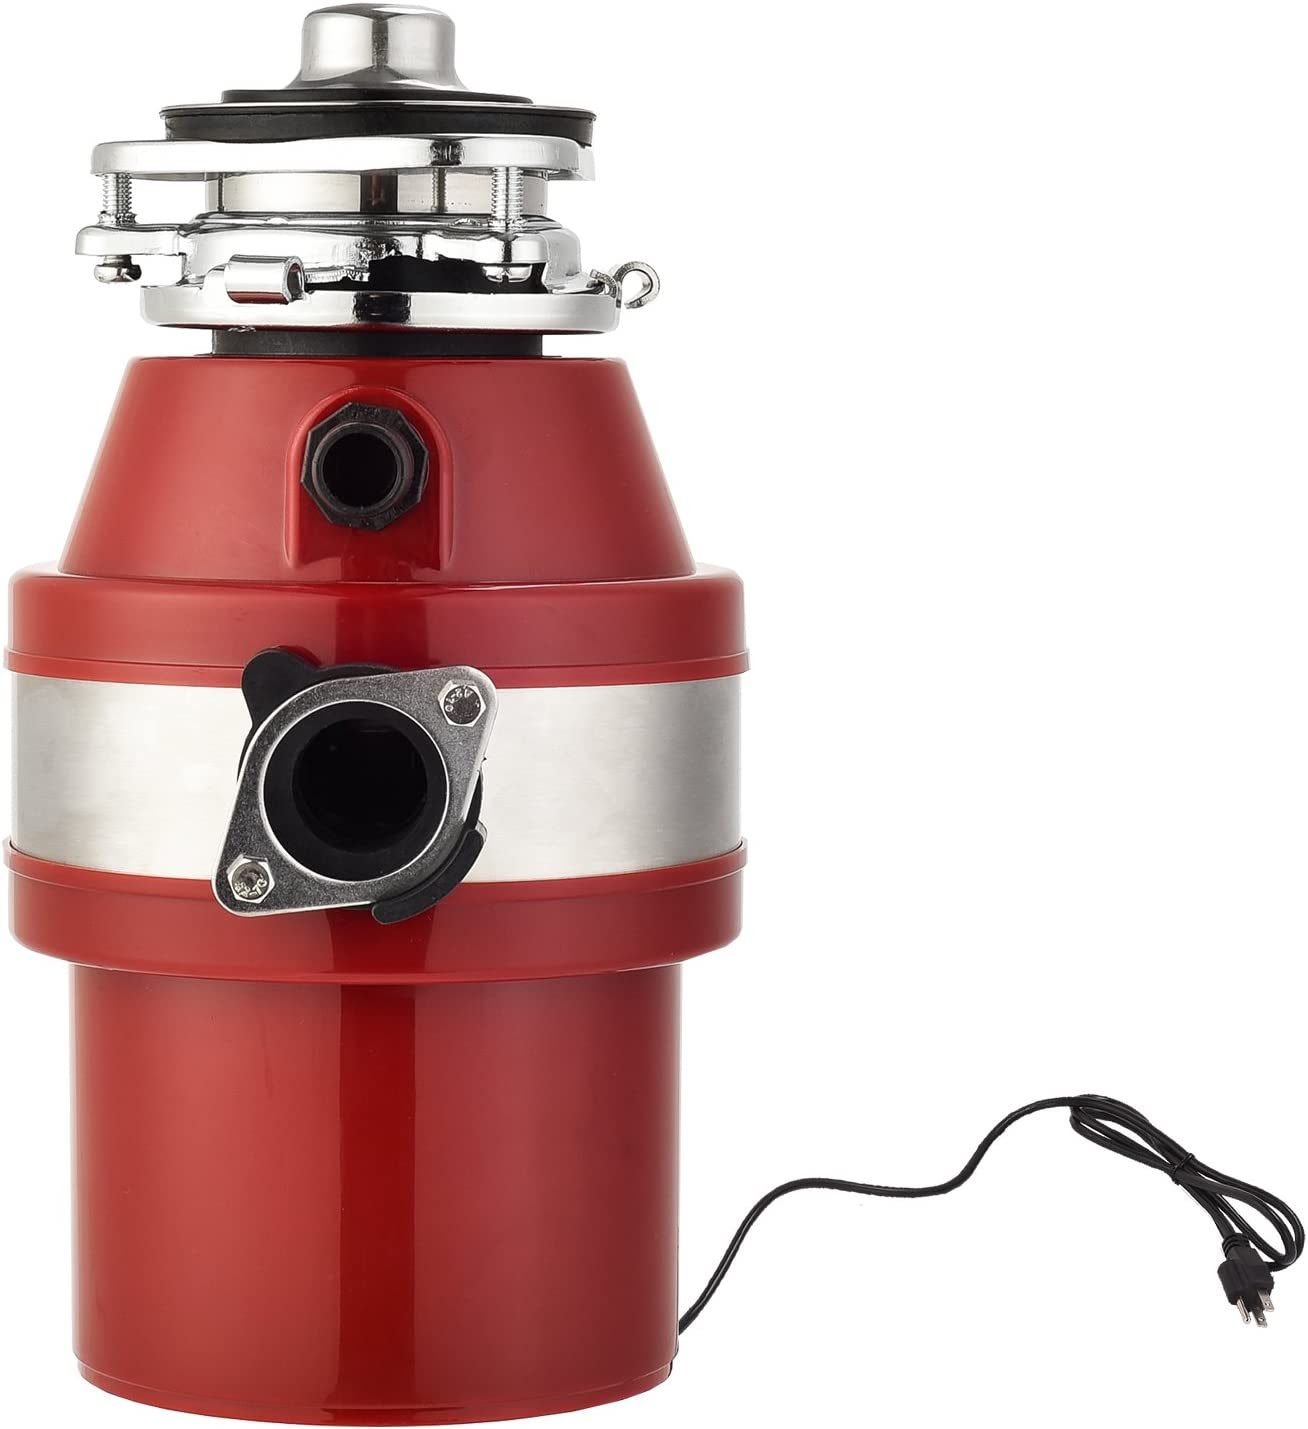 KUPPET Garbage Disposal Super sale with famous Household 1 2 HP